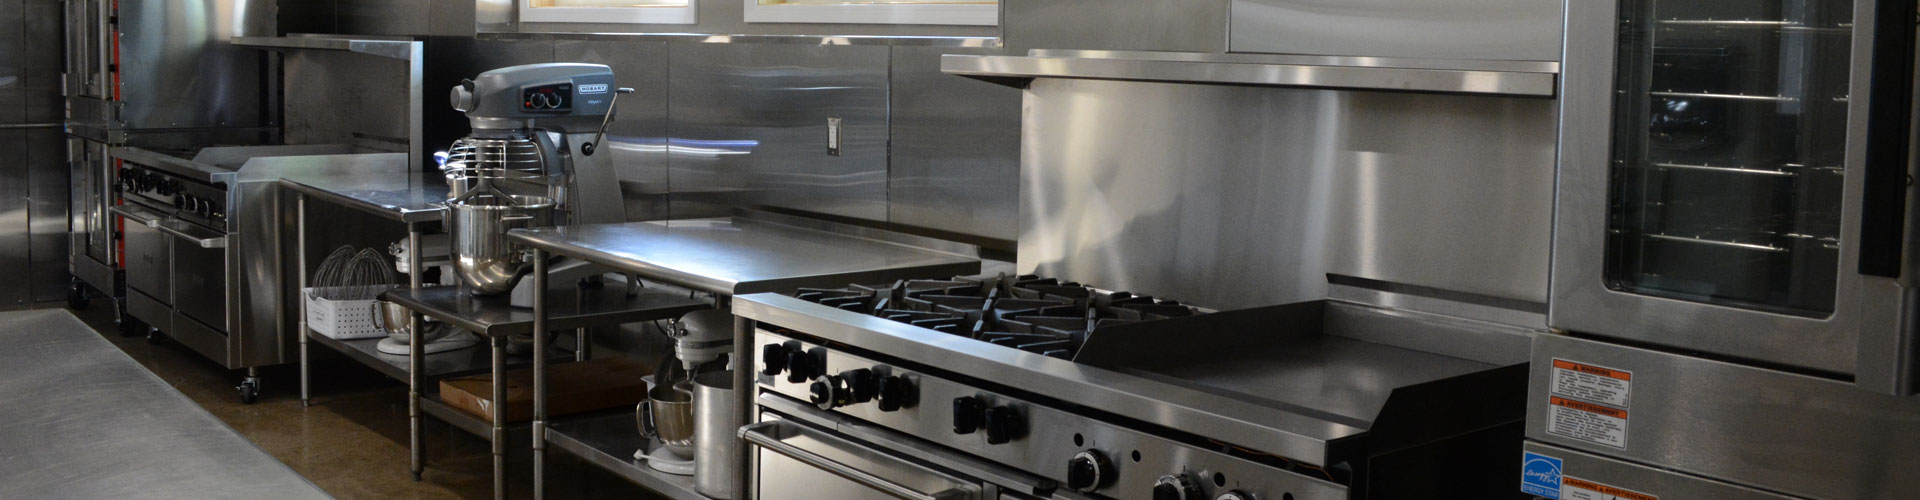 Commercial Kitchens for Rent | Square One | Fargo